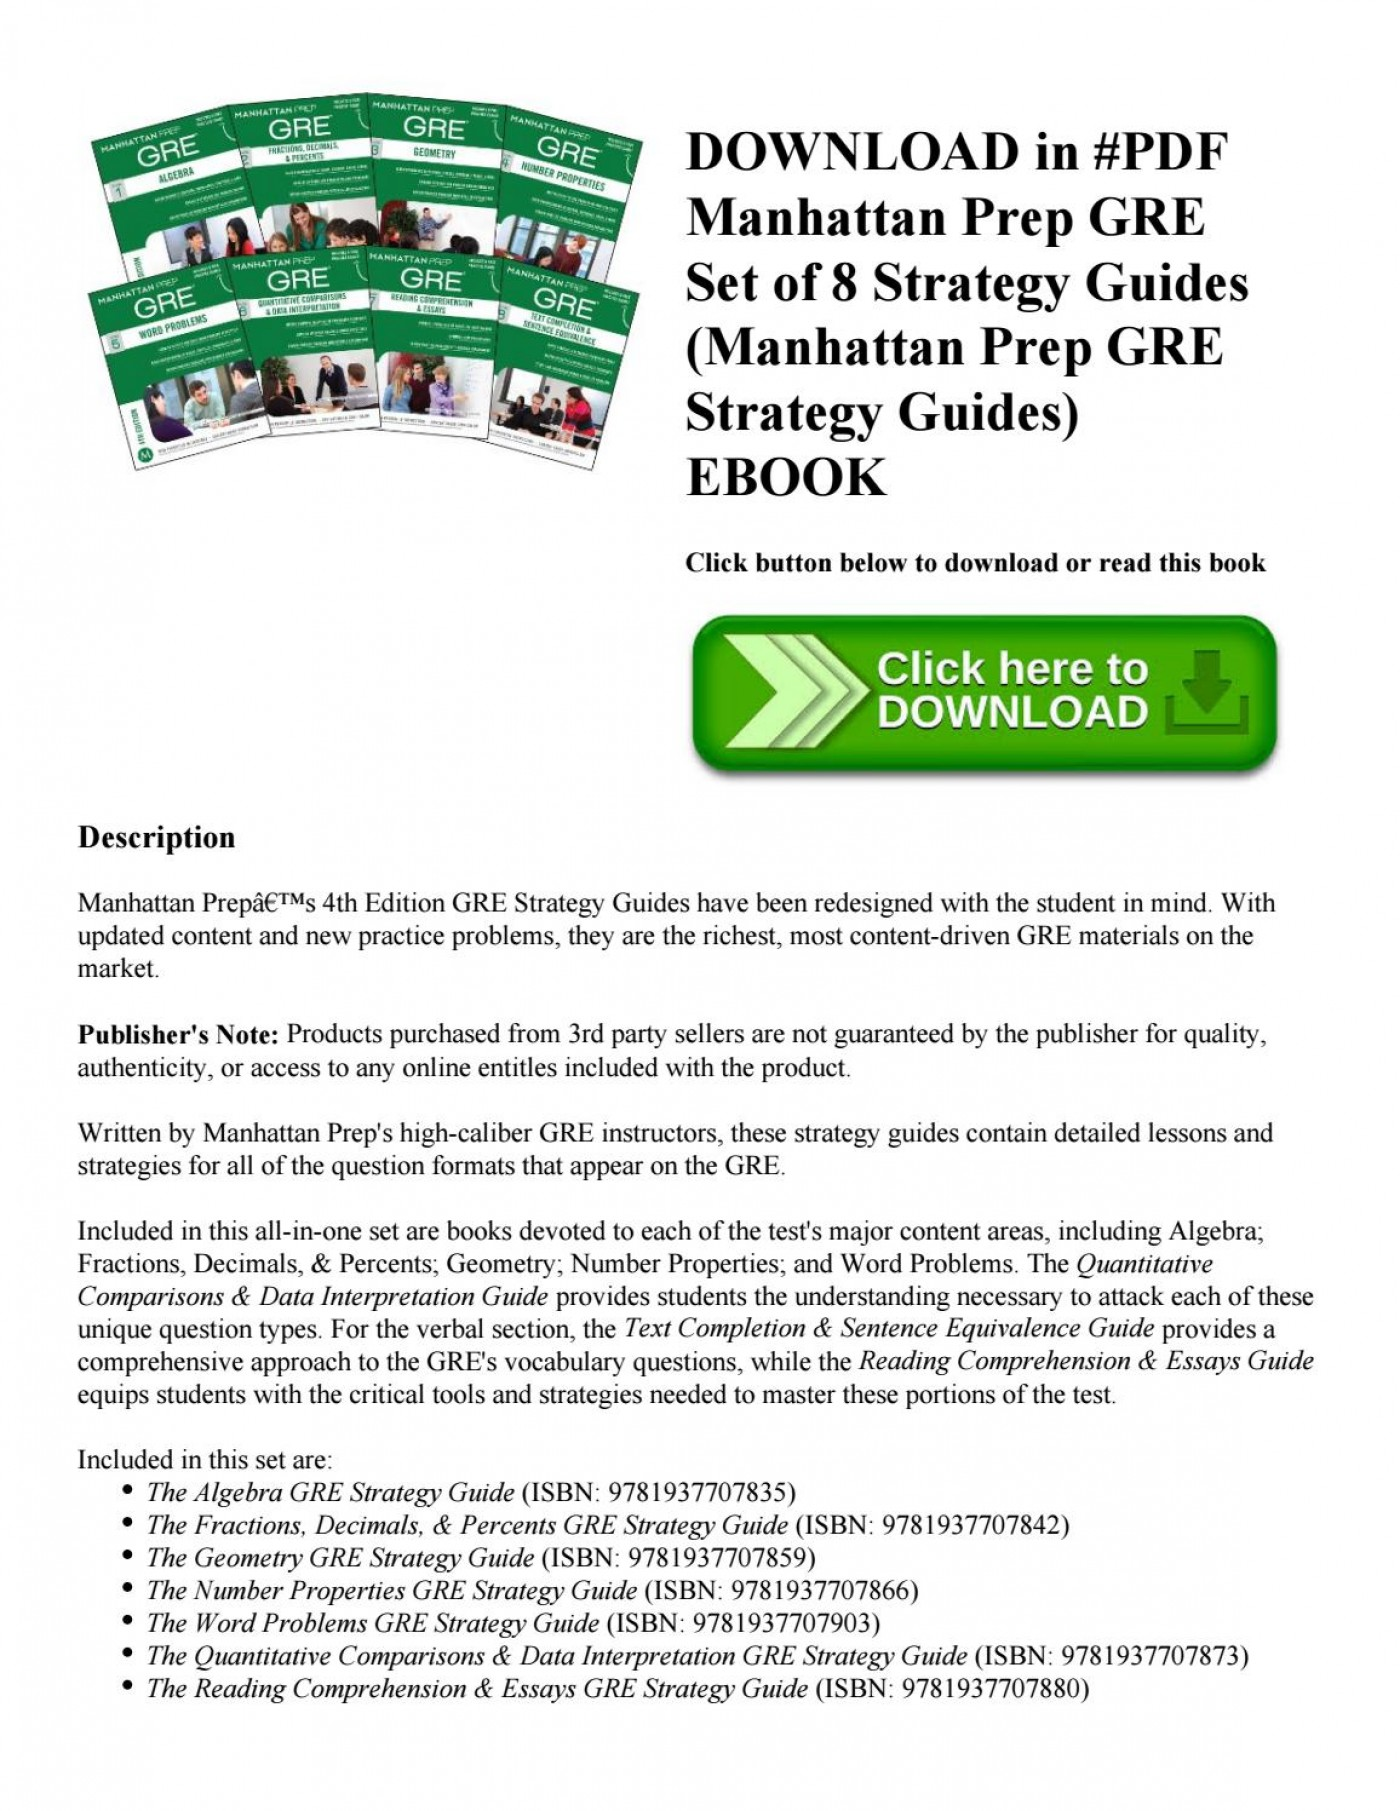 017 Gre Essay Book Pdf Page 1 Incredible Analytical Writing 1400